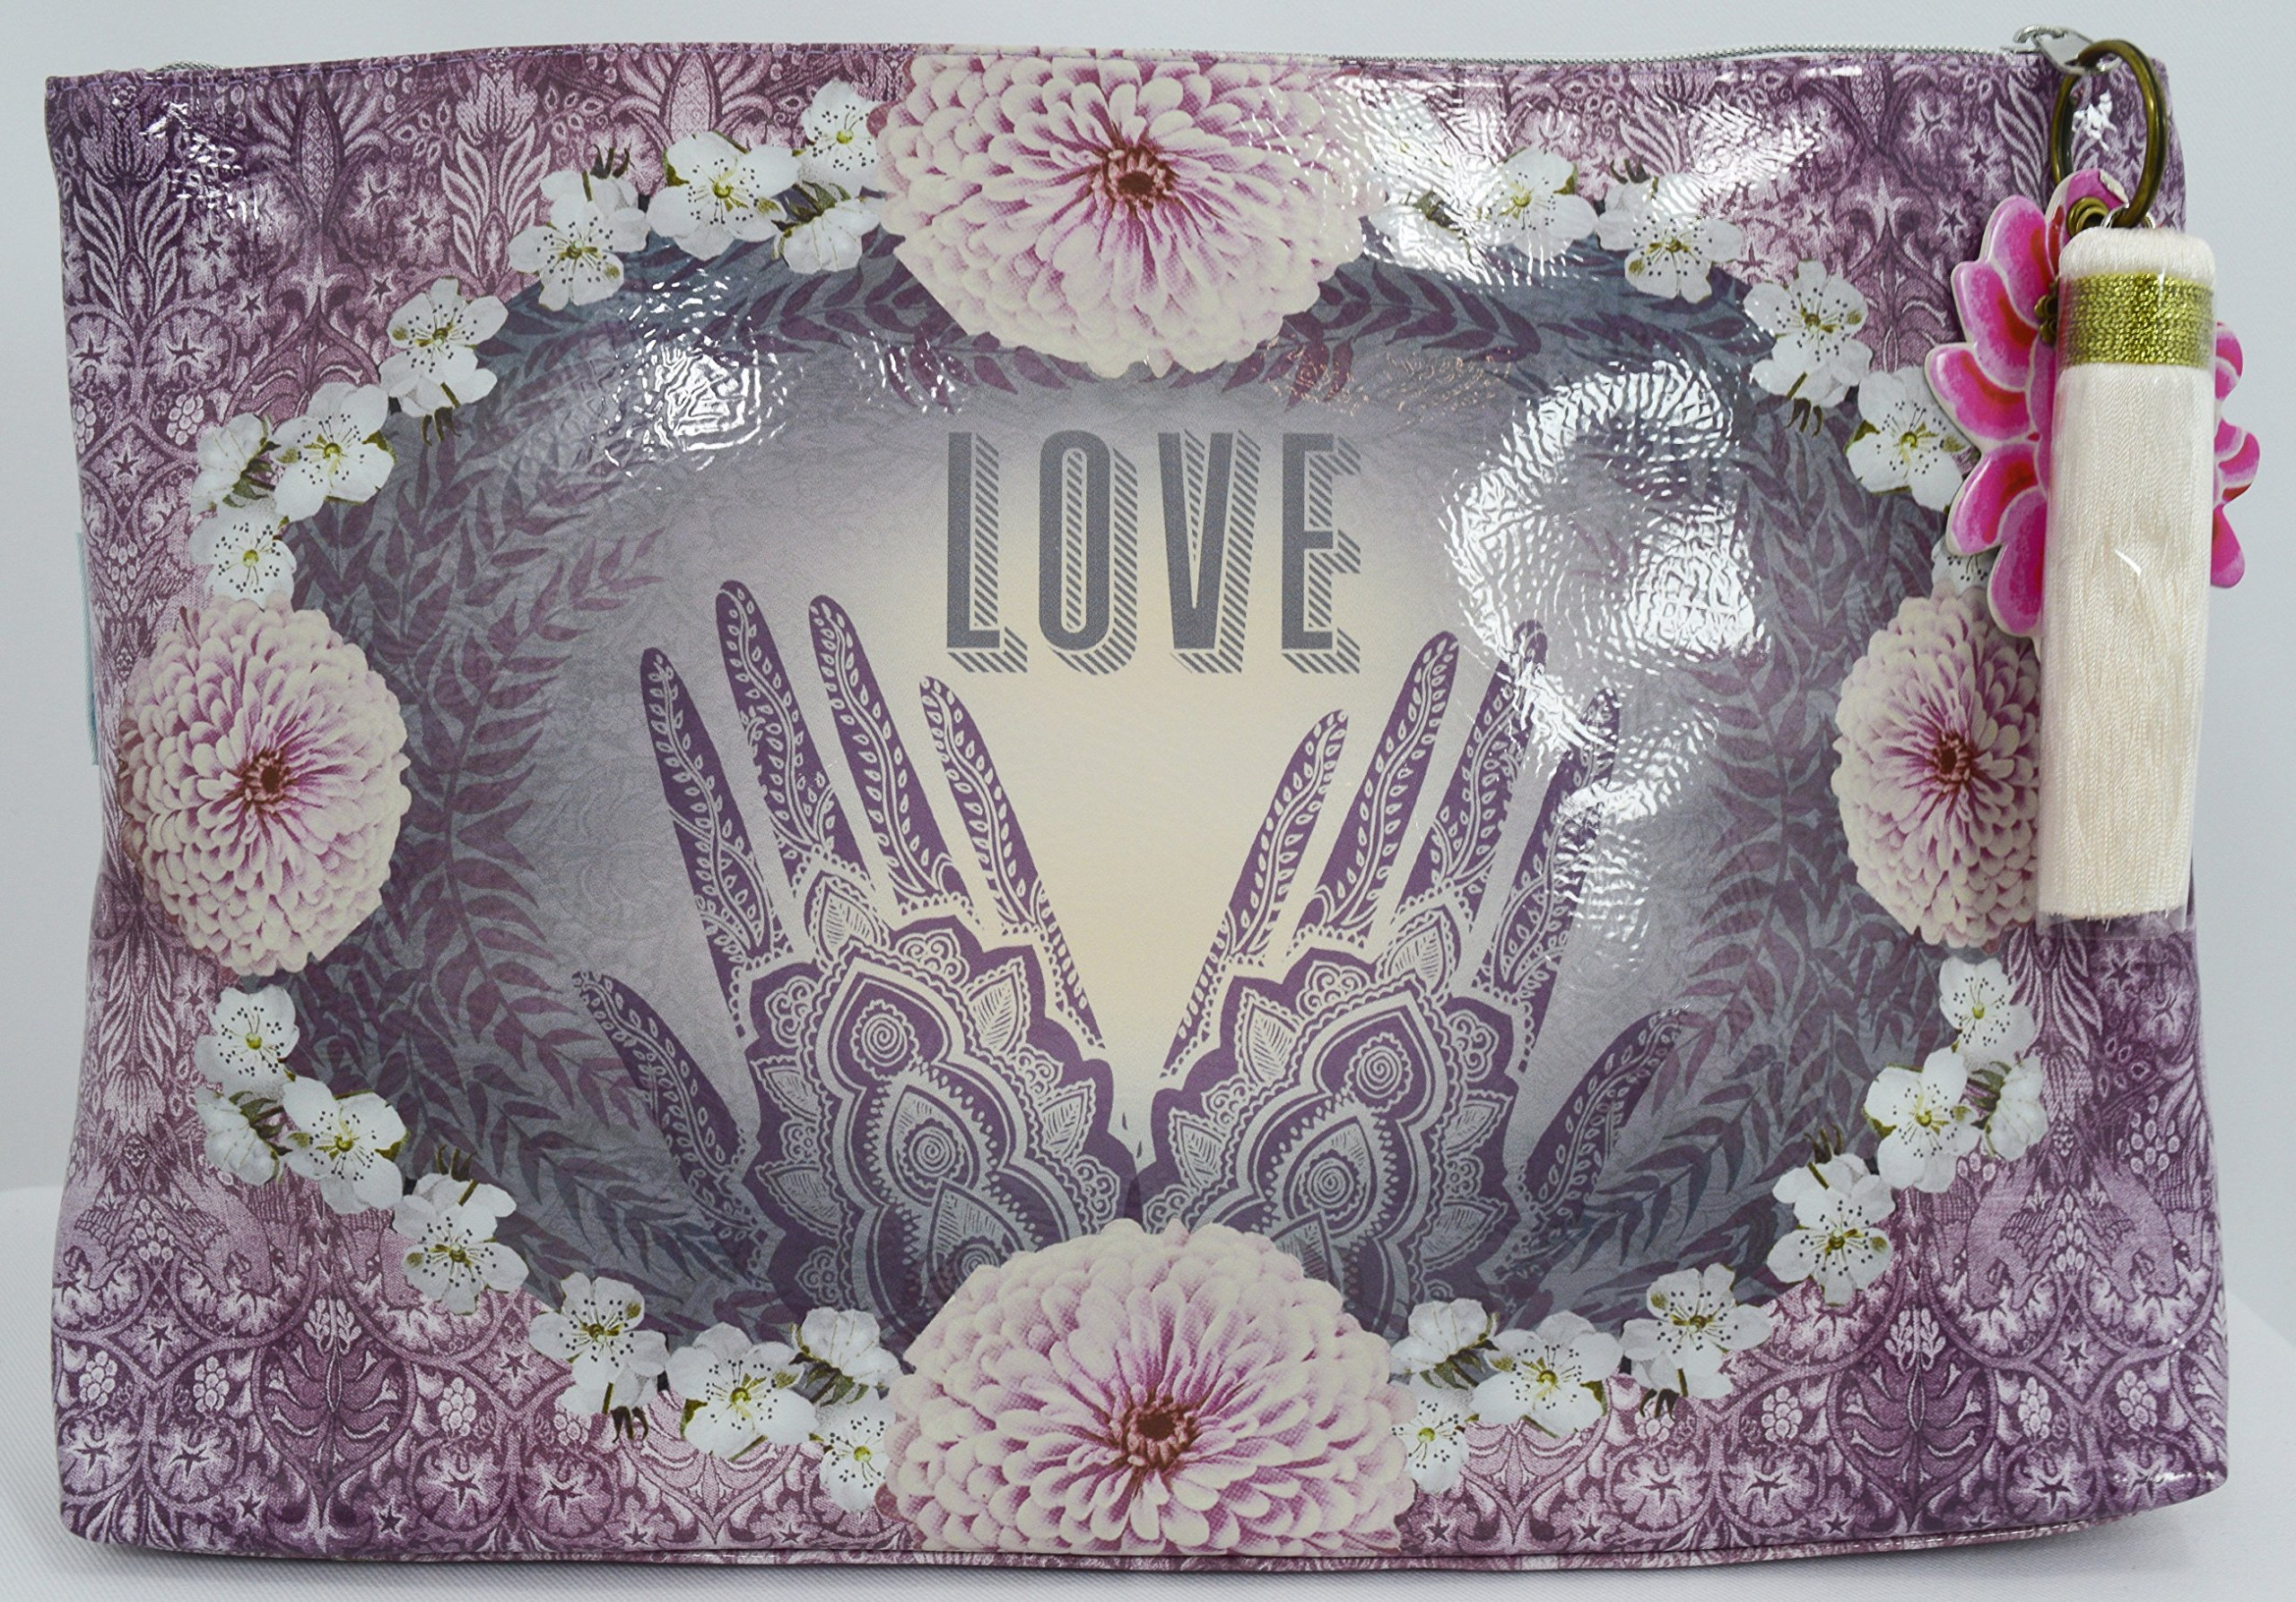 Love Henna Designs Oil Cloth Large Make-up or Accessory Travel Bag by Papaya (Image #5)